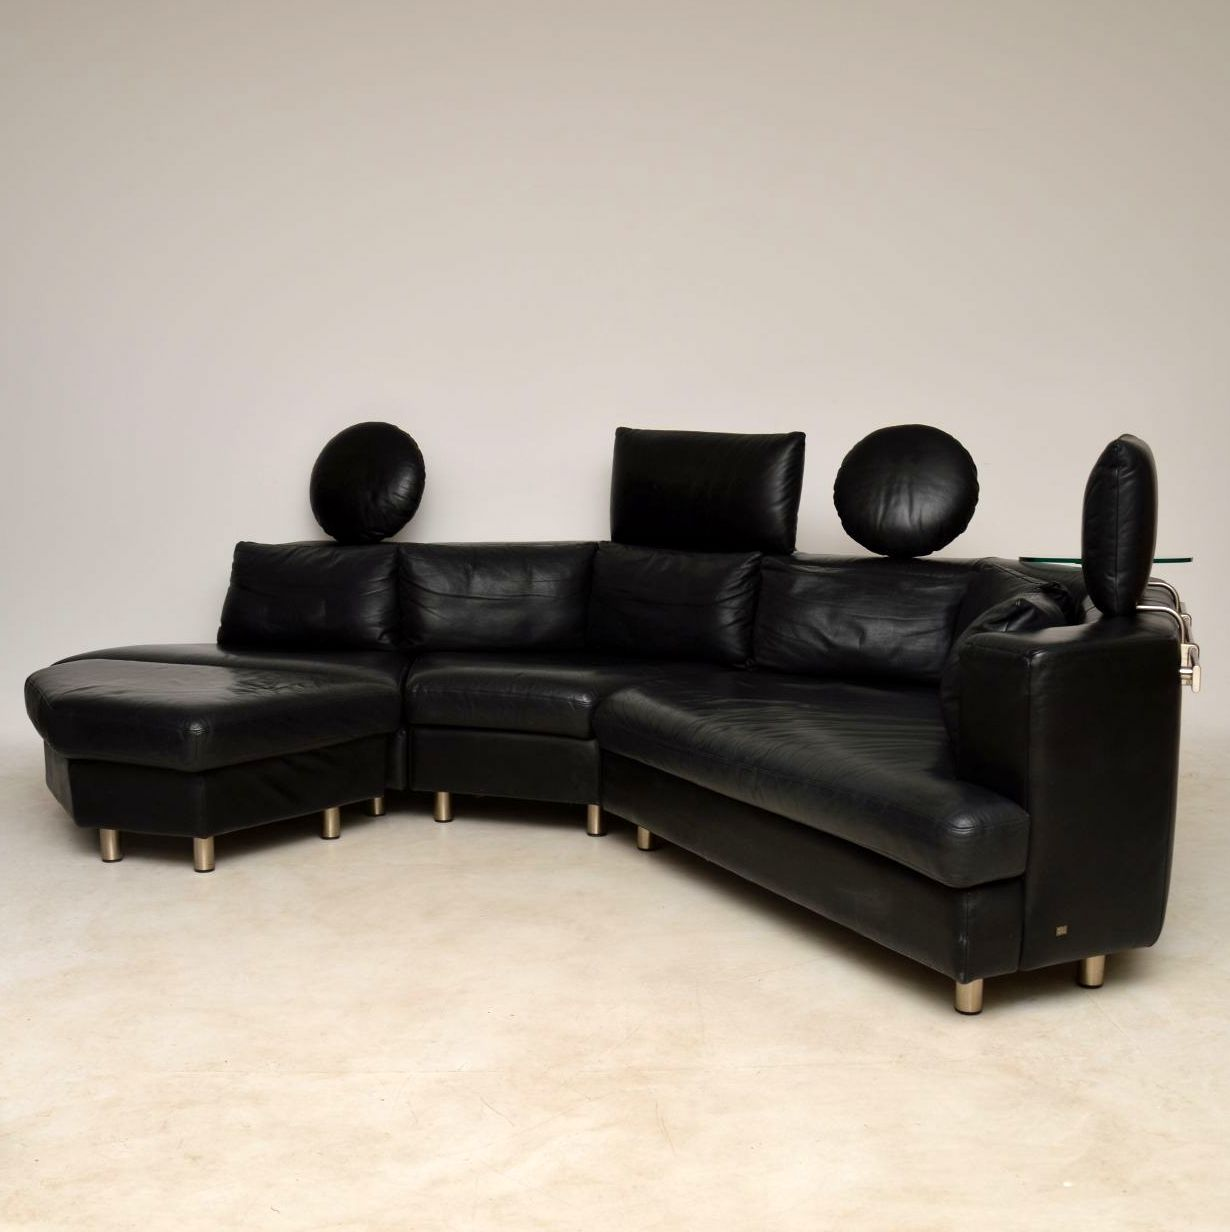 Bettsofa Rolf Benz 1970 S Vintage Leather Modular Sofa By Rolf Benz